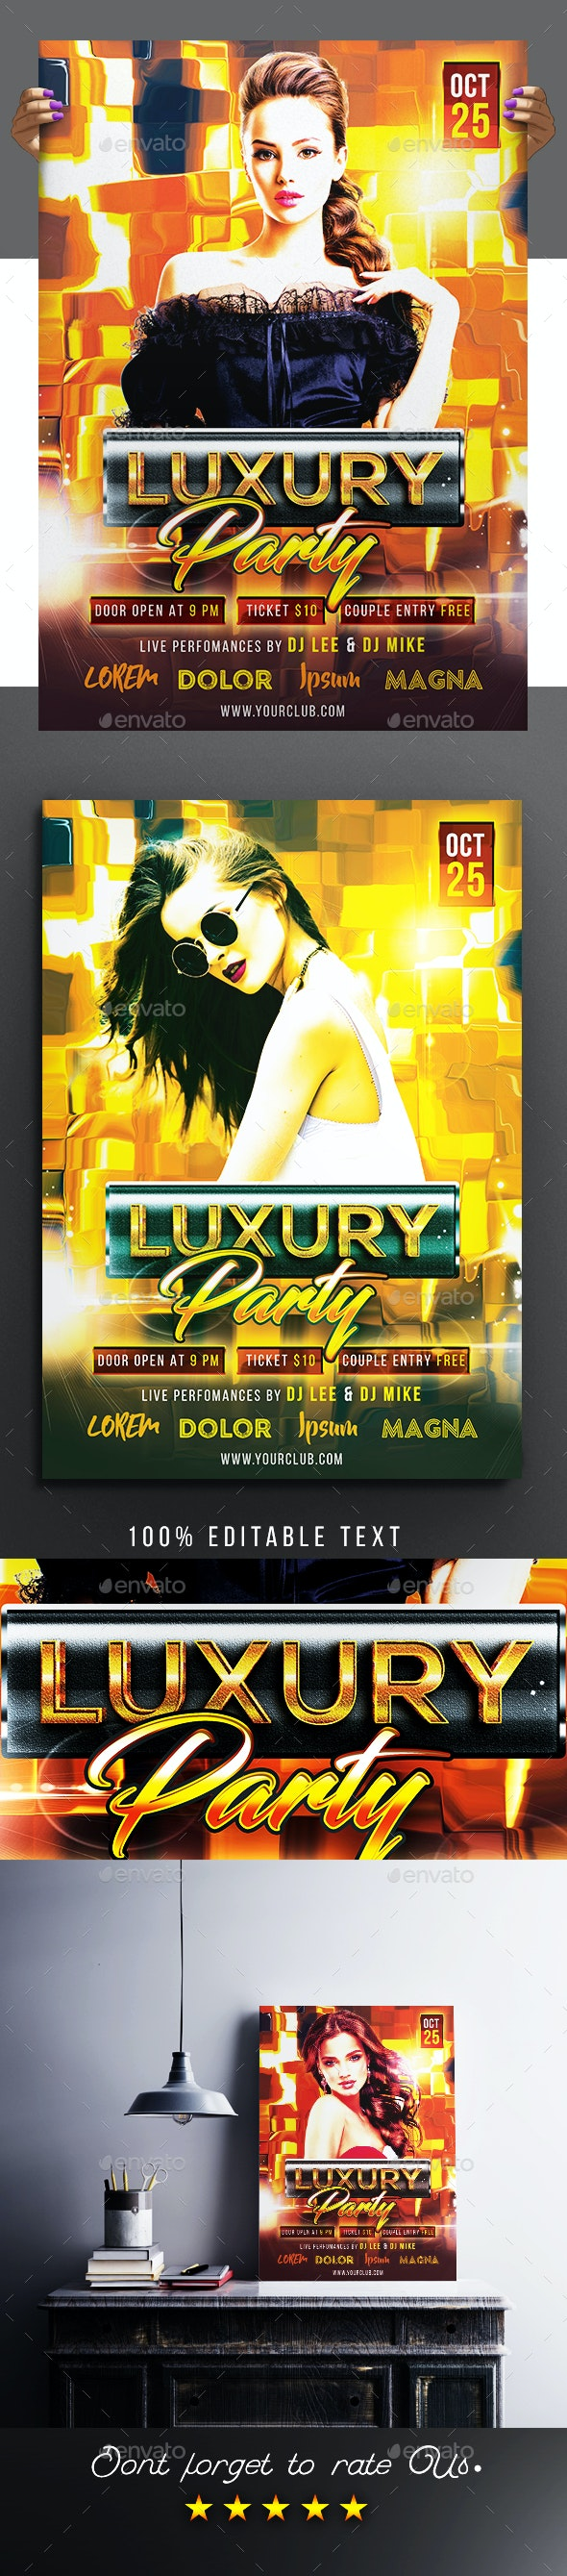 Luxury Party Flyer / Poster - Clubs & Parties Events